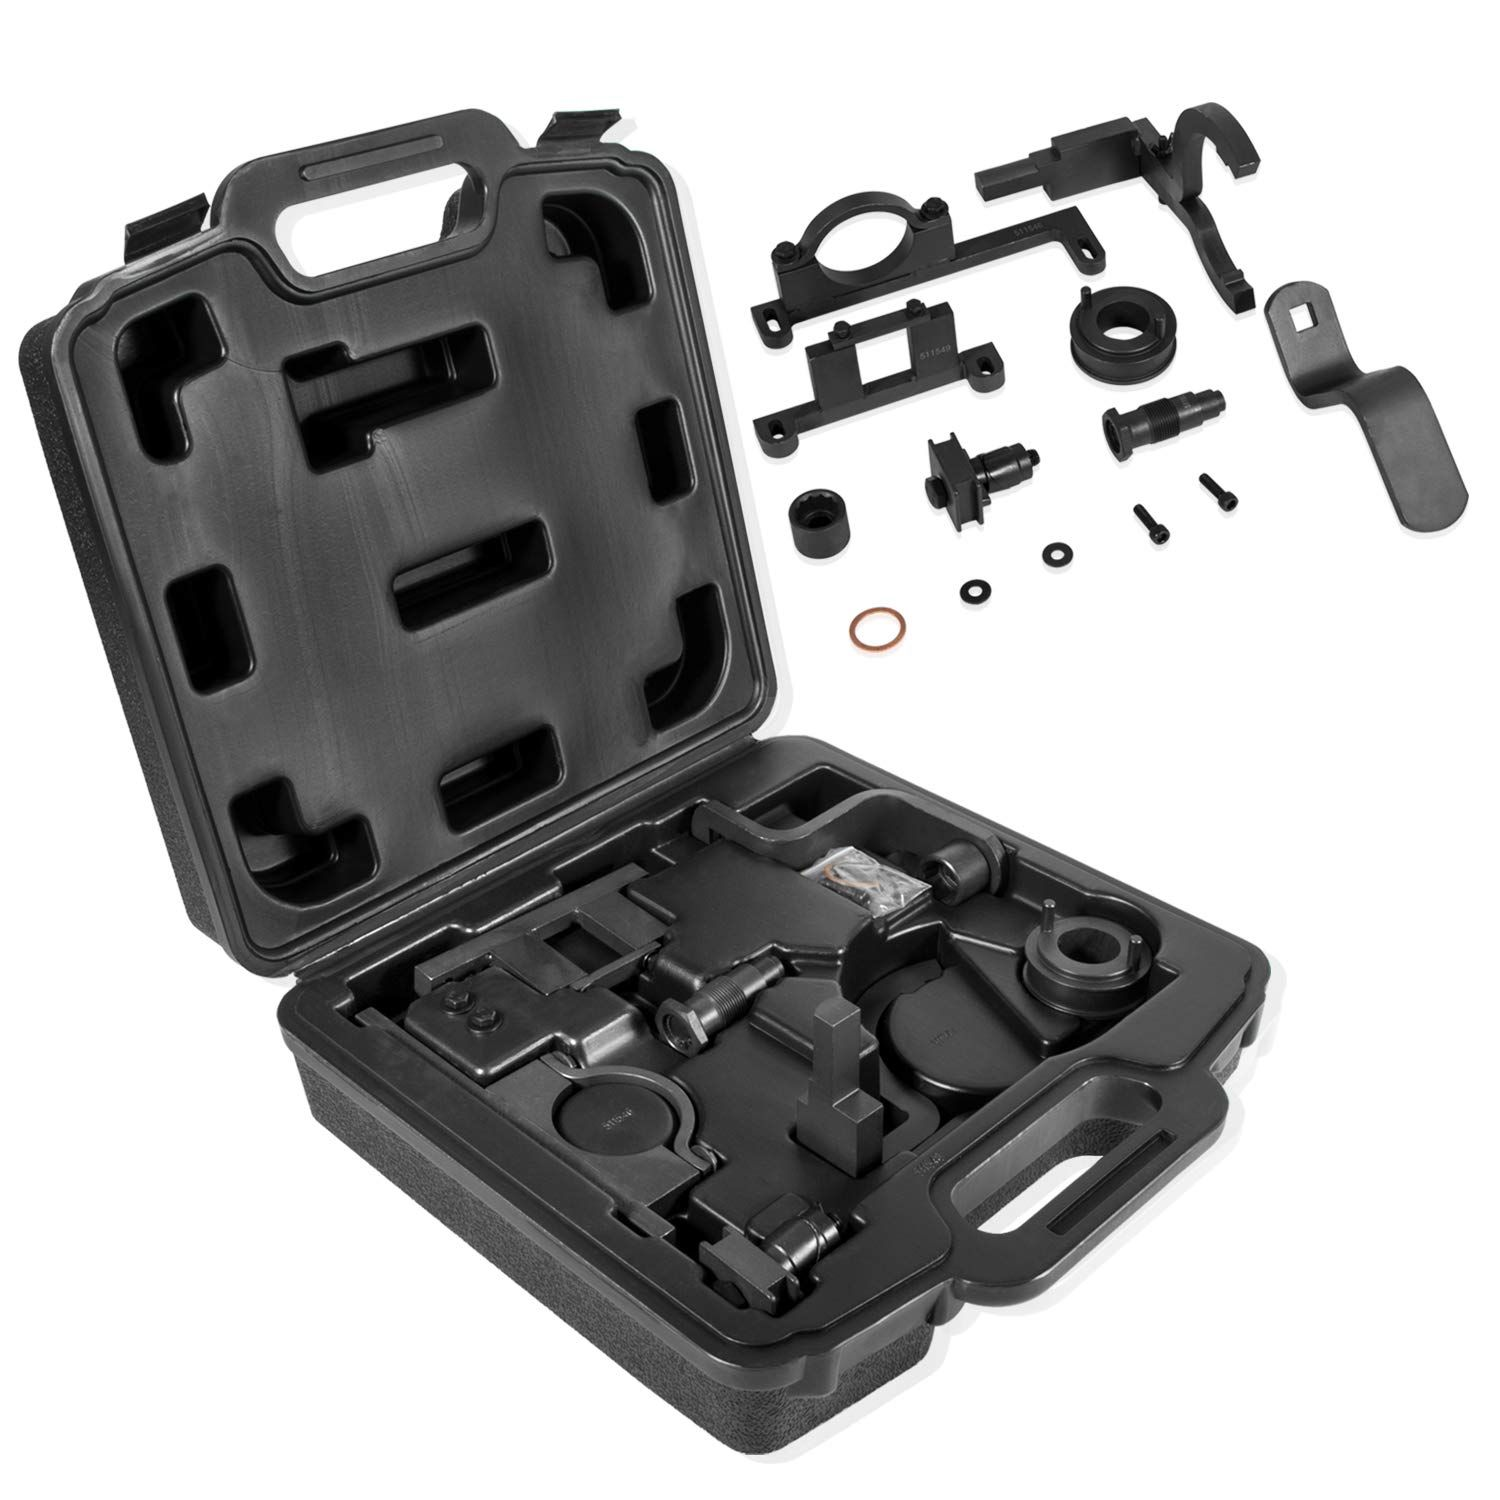 6488 SOHC 4.0 V6 Cam Tool Kit Similar to OTC 6488 Timing